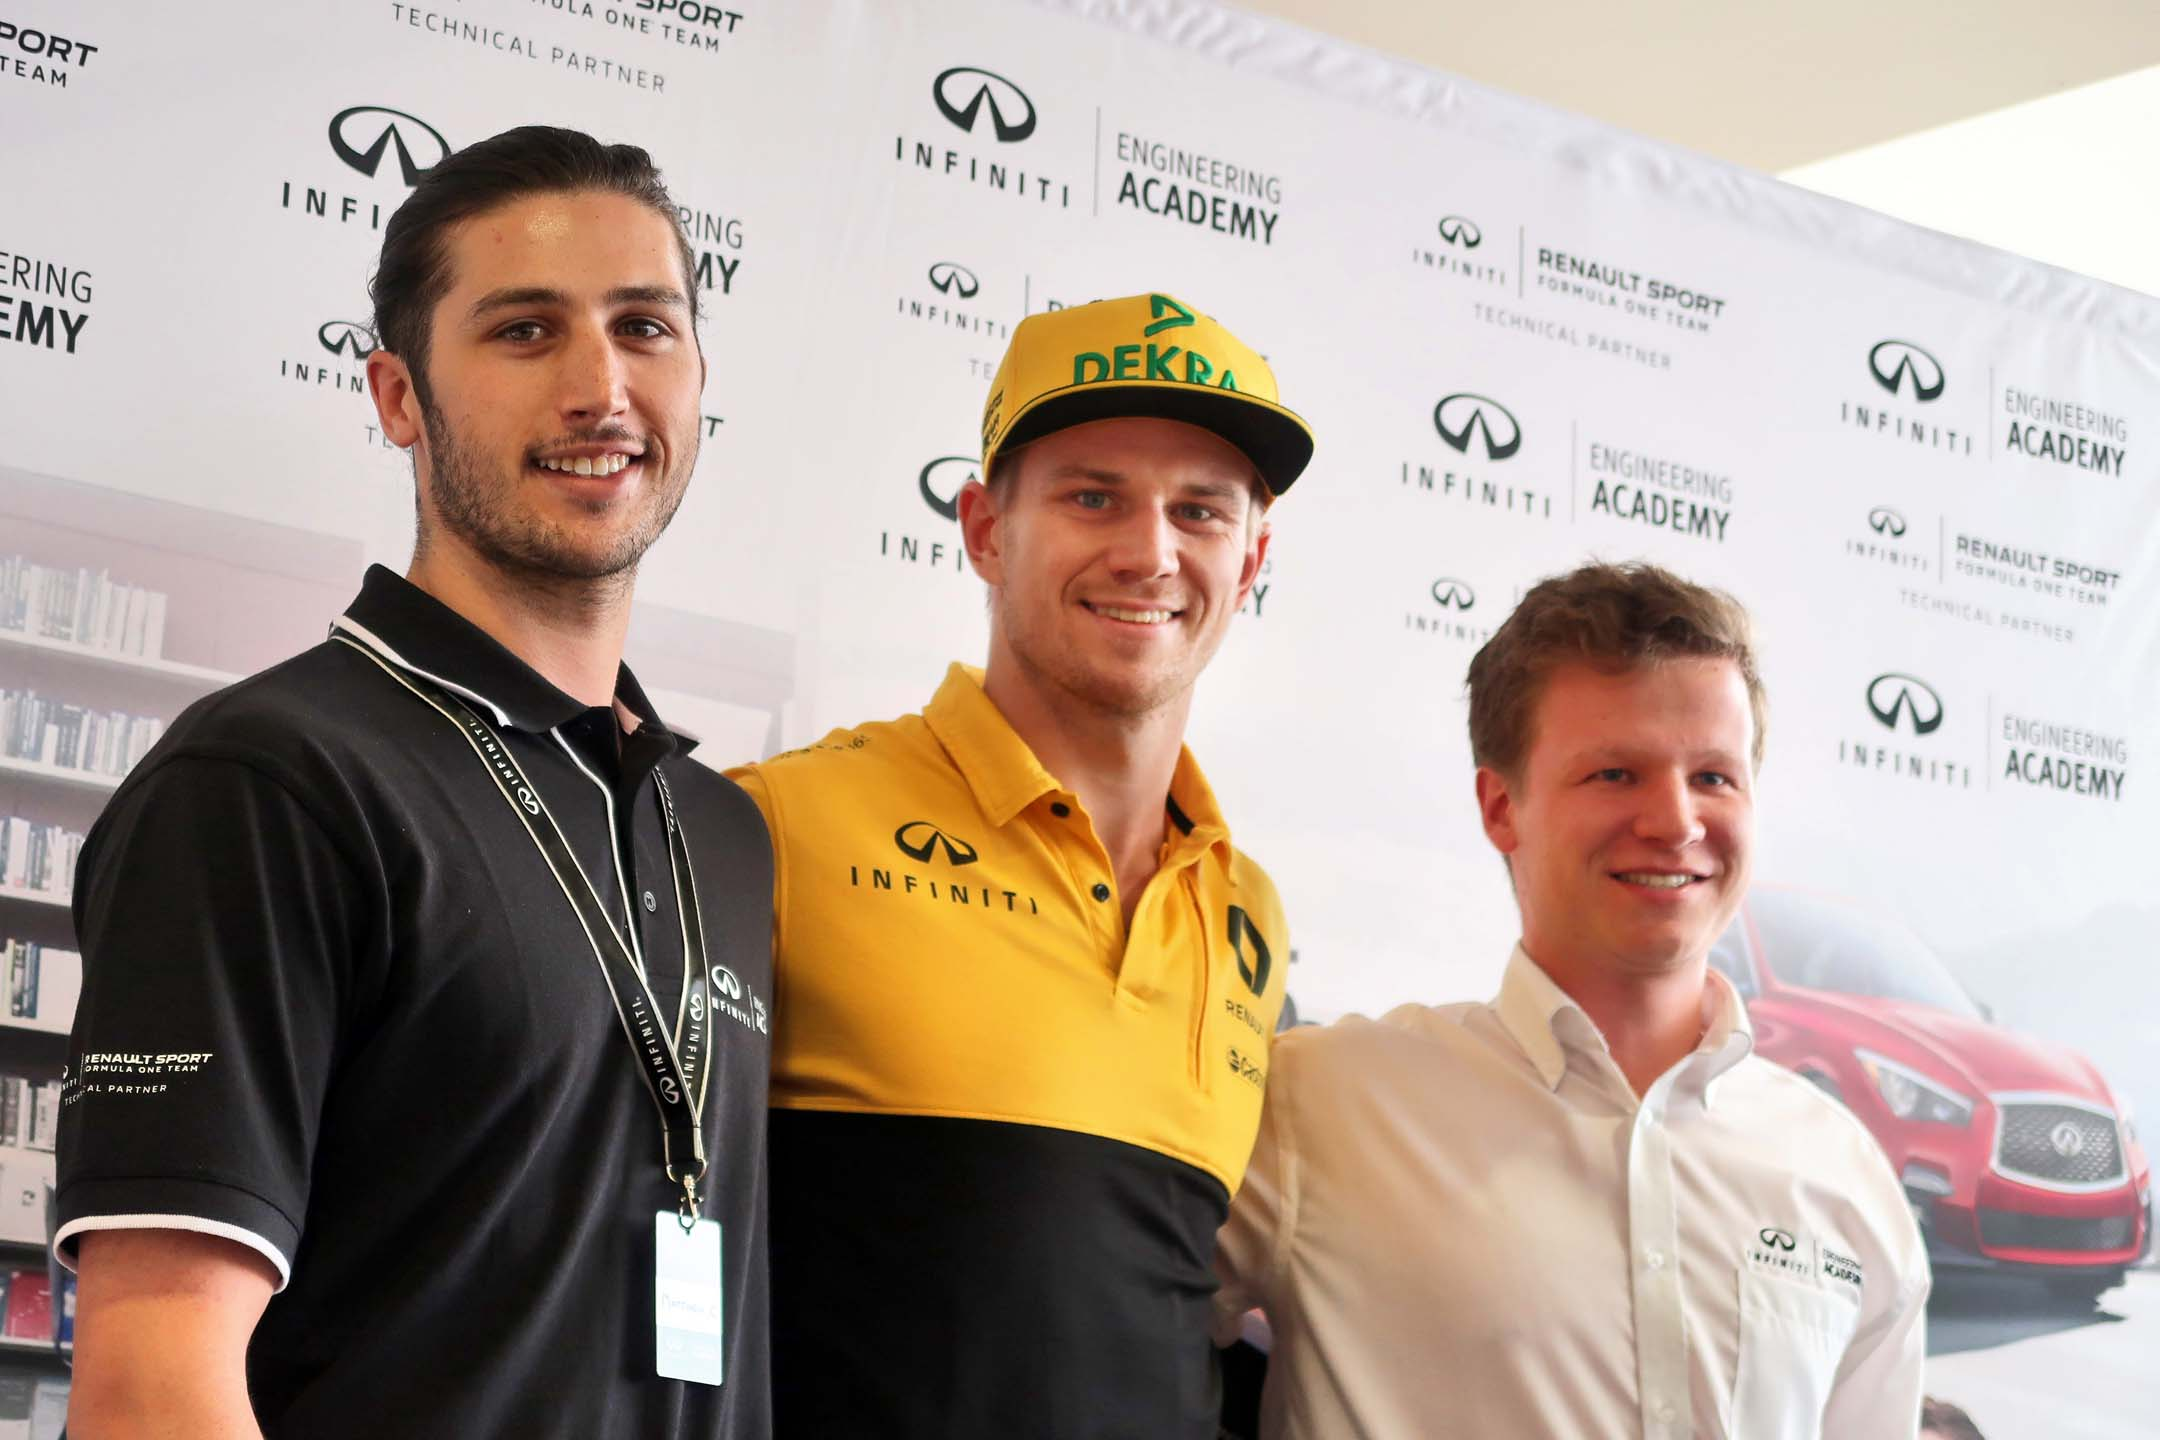 Matthew Crossan, the 2017 winner, and Felix Lamy, the 2016 champion, with Nico Hulkenberg.